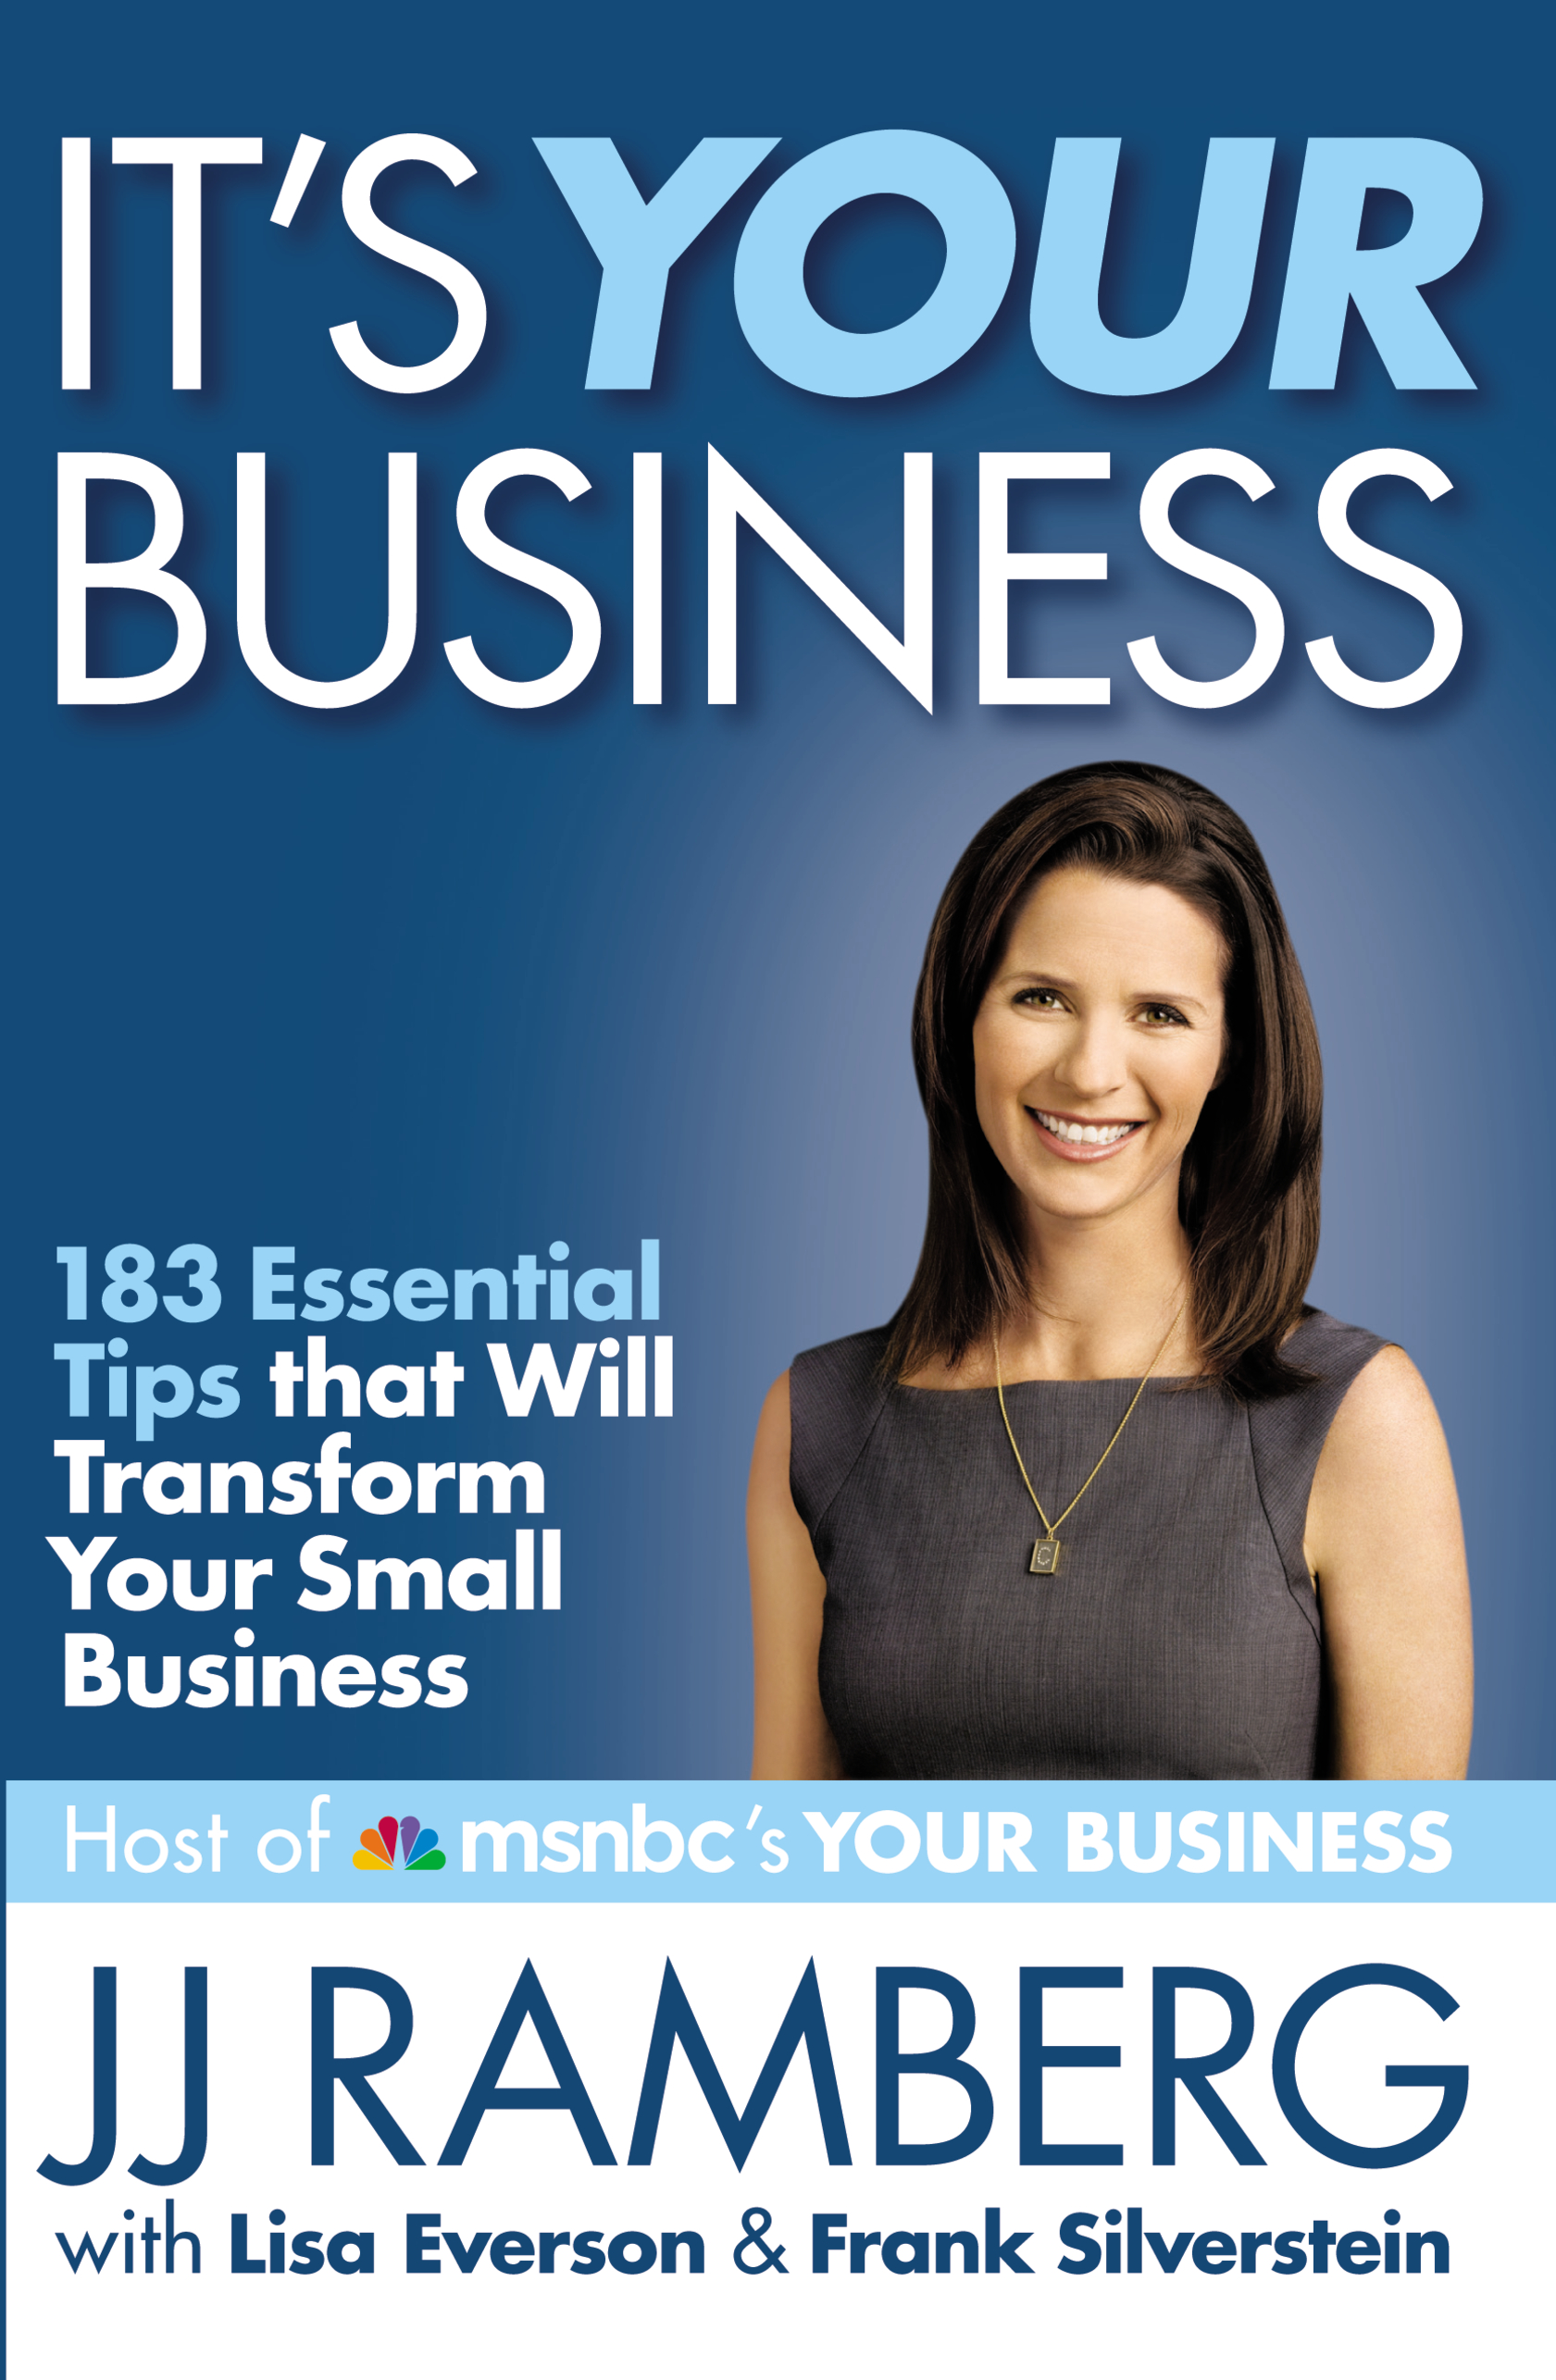 It's Your Business book cover